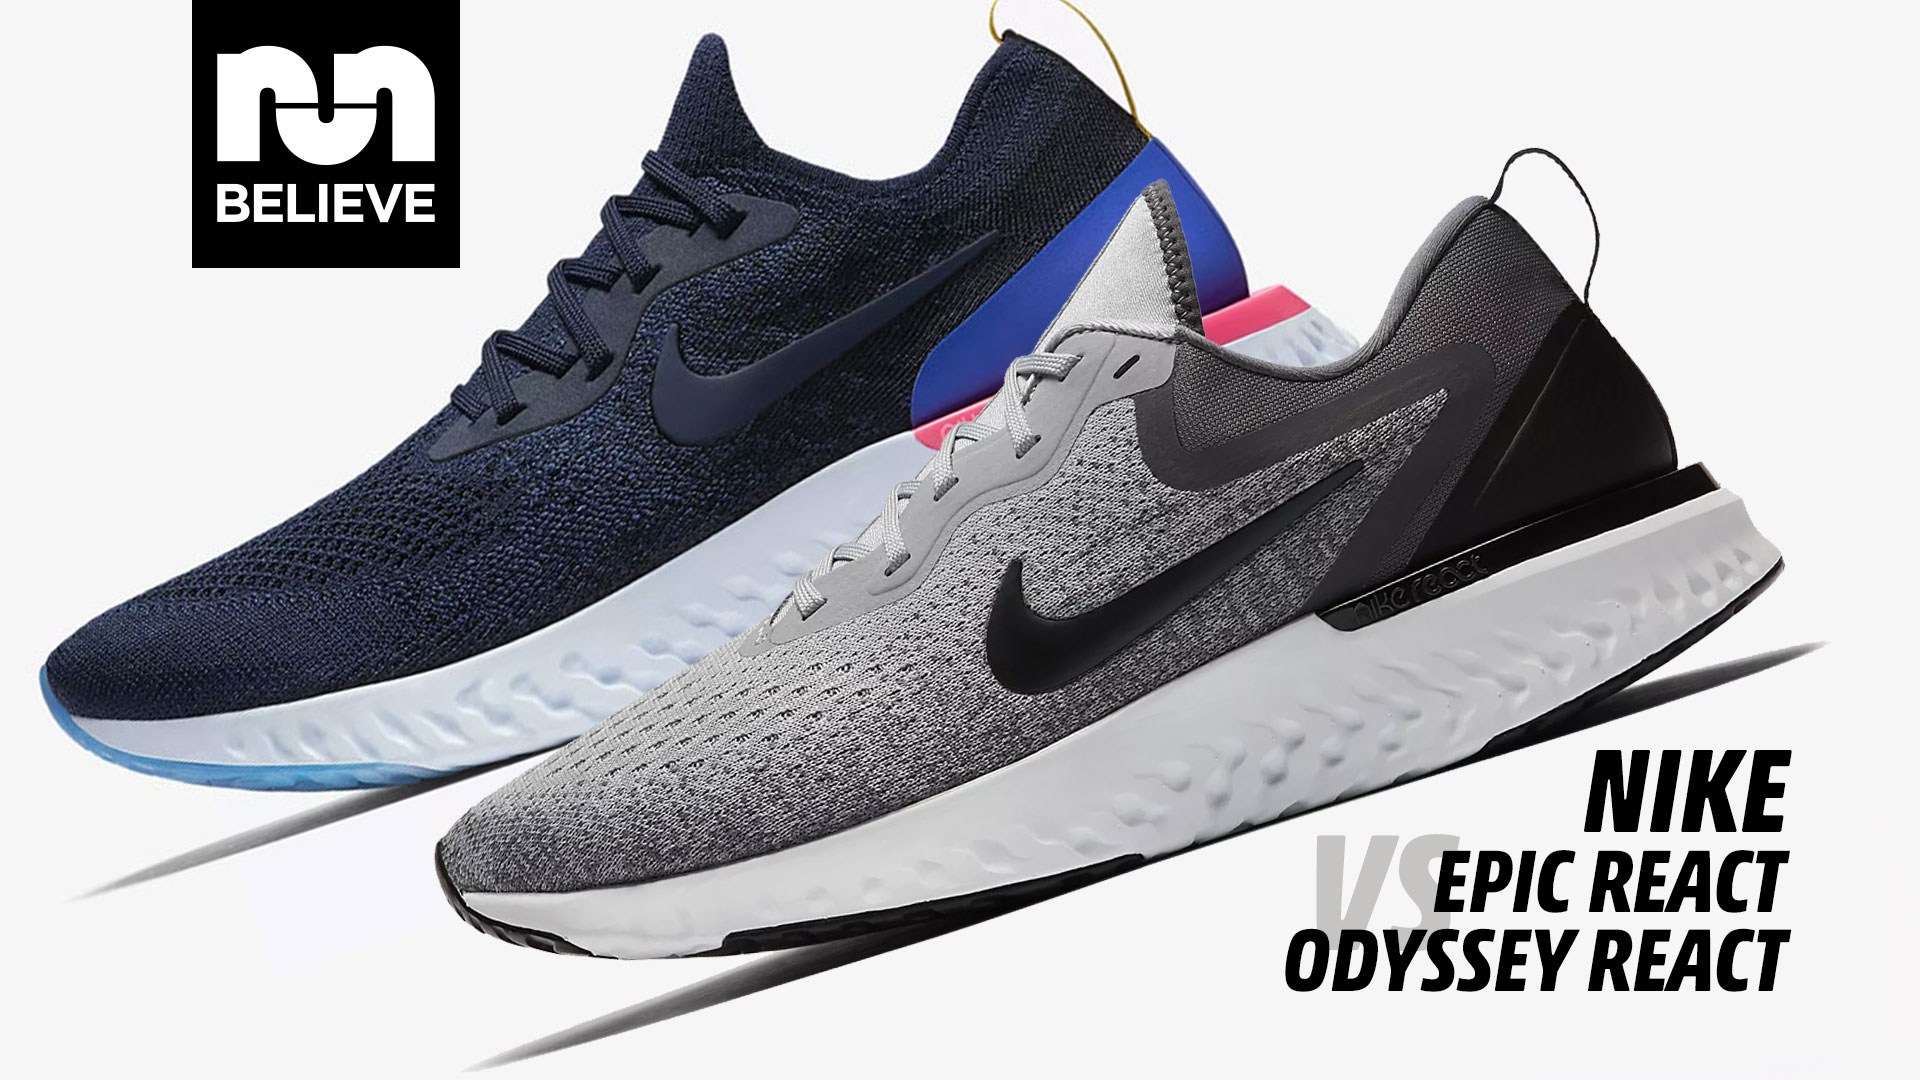 Nike Epic React vs Odyssey React - YouTube